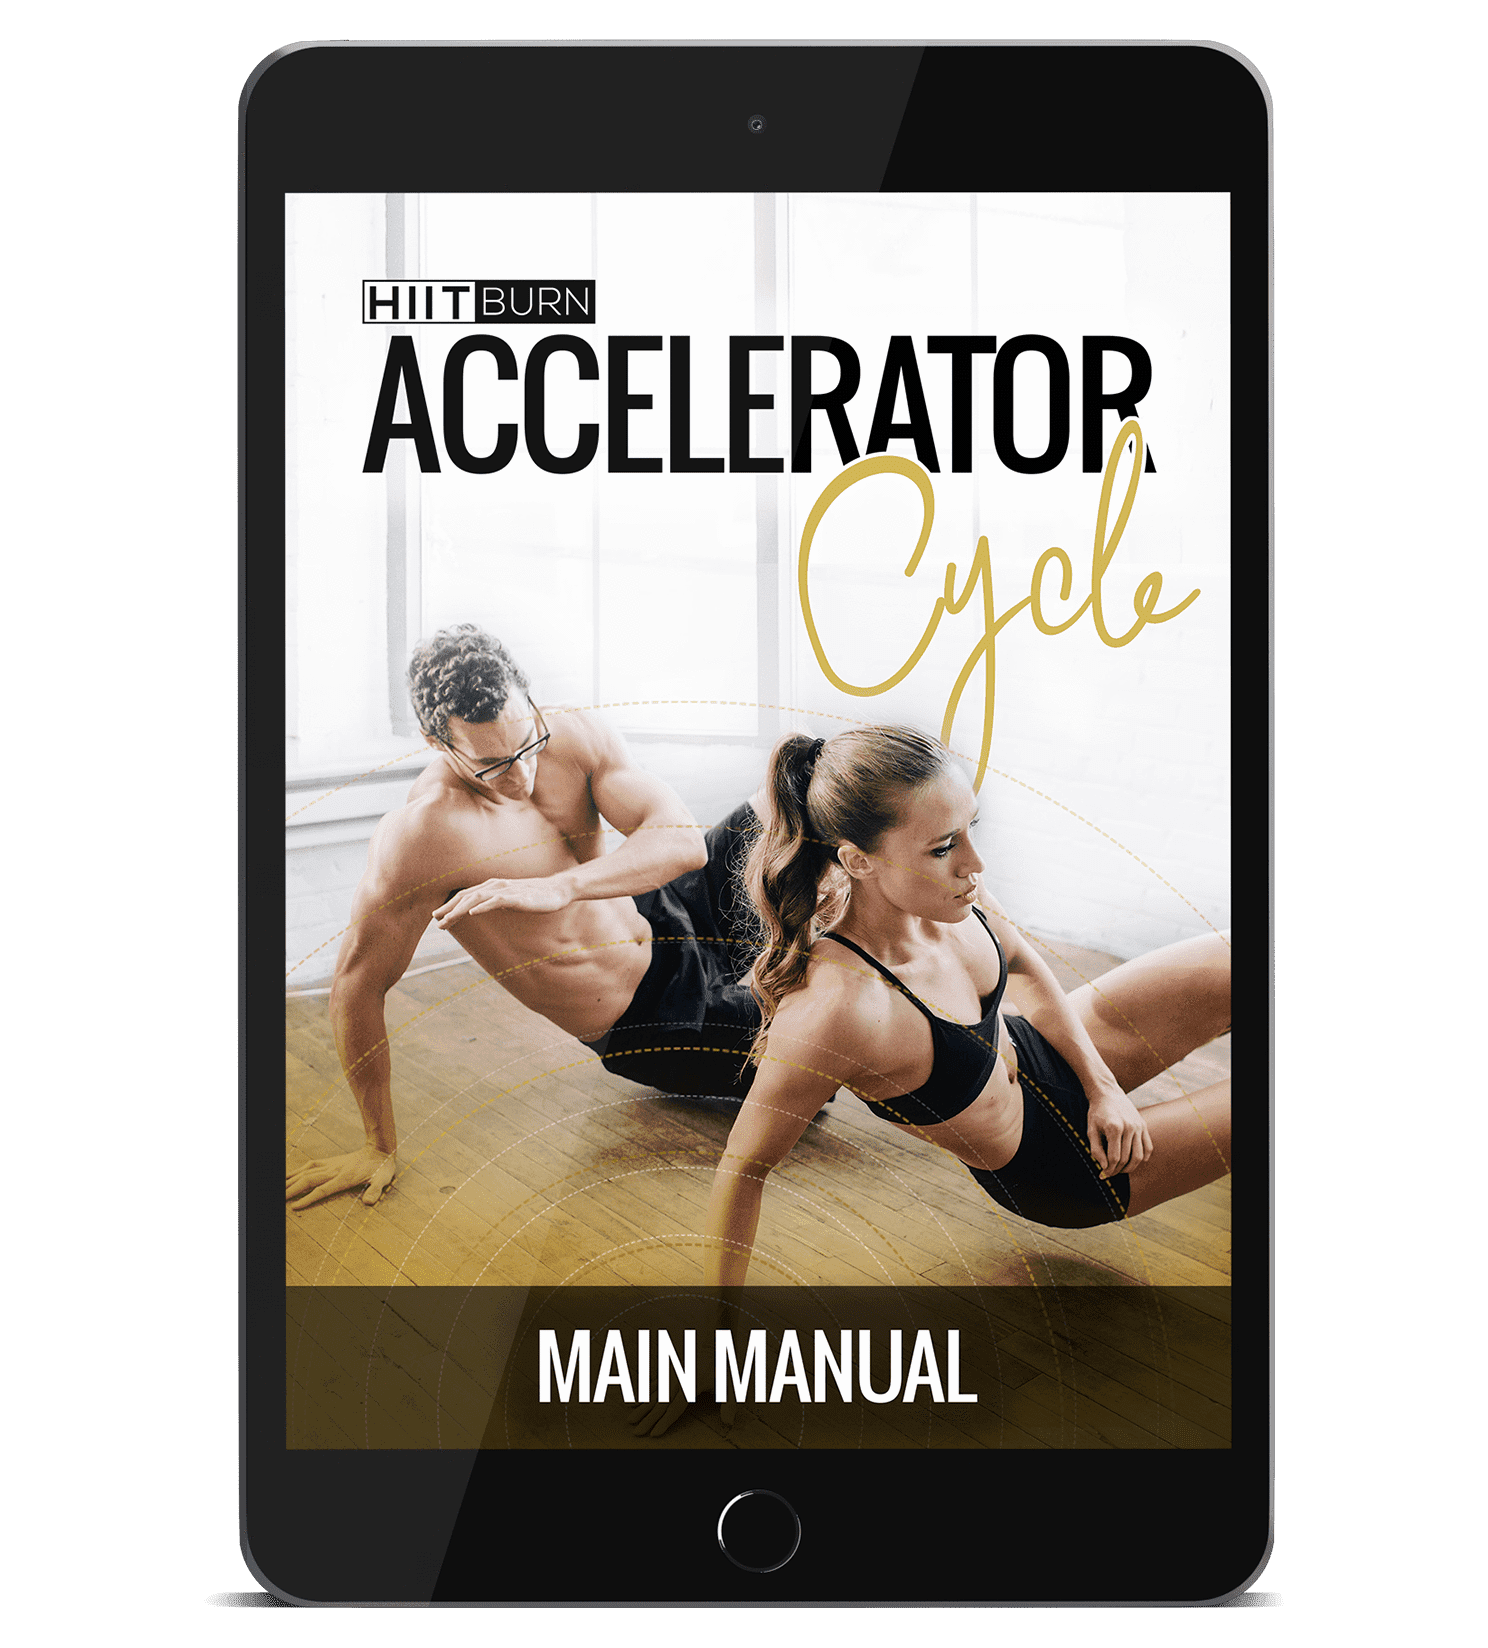 Accelerator Cycle